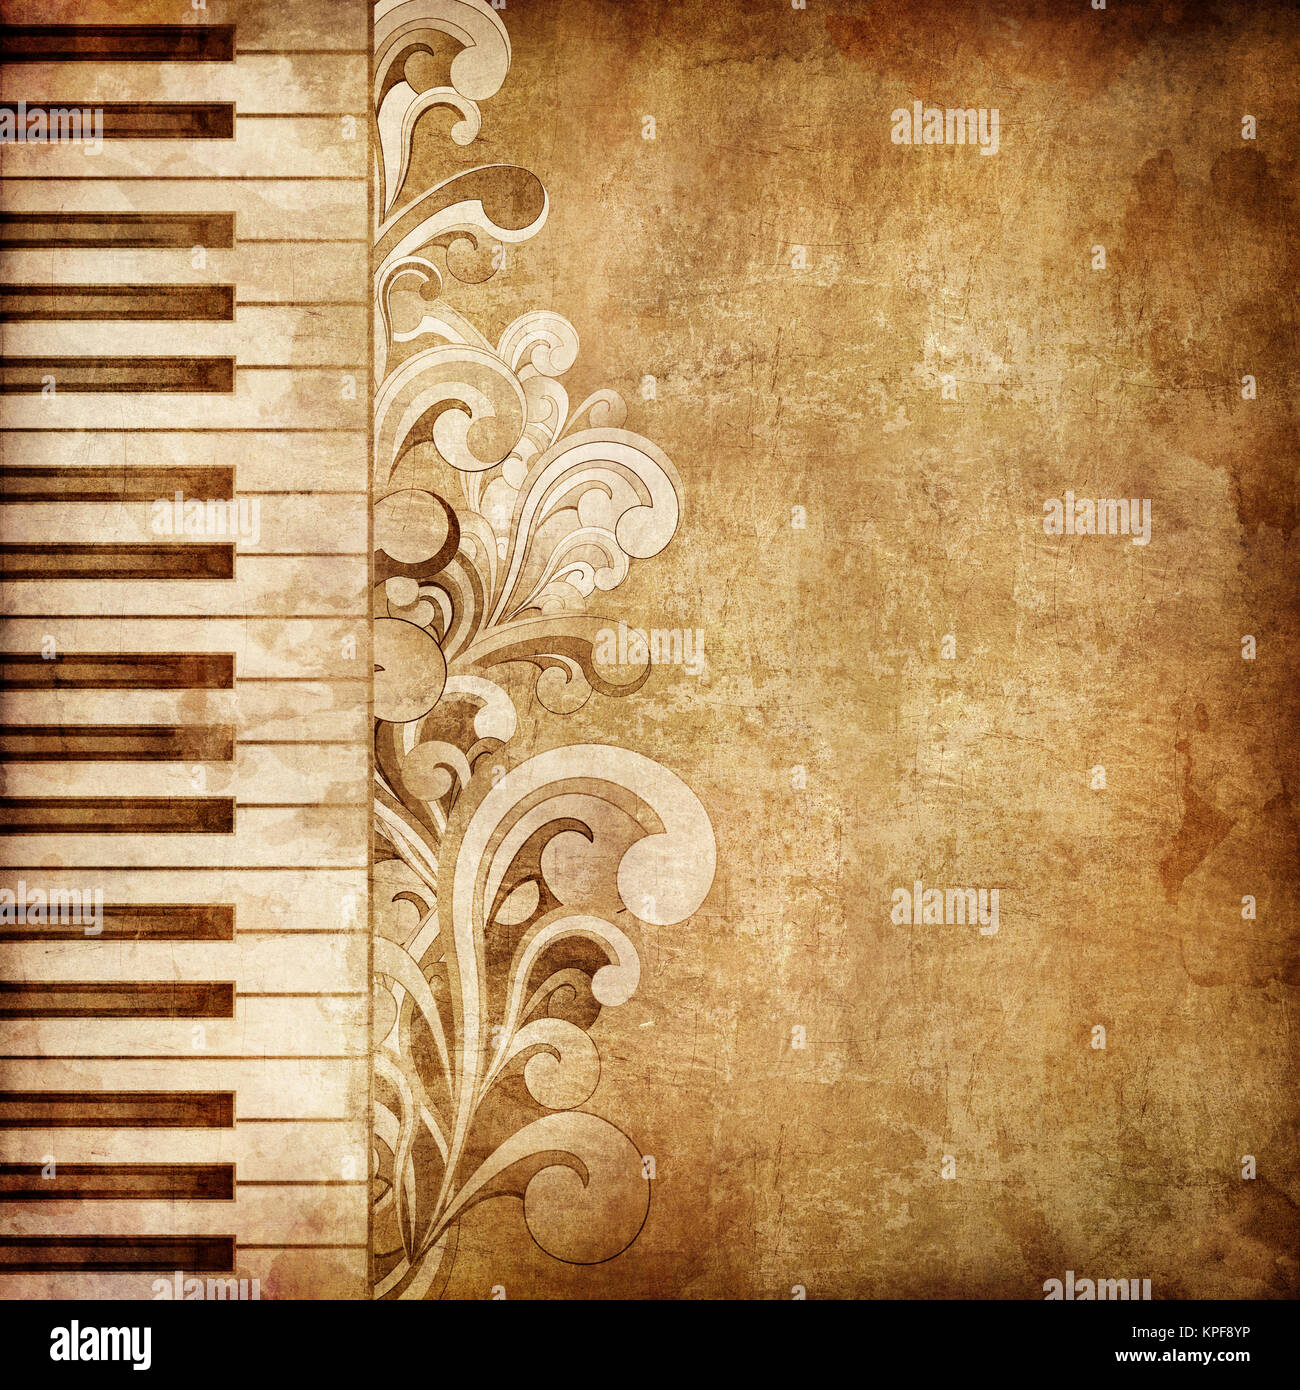 Blank Piano Sheet Music For All My Fellow Piano Lovers: Old Paper. Retro Music Texture Background. Vector Stock